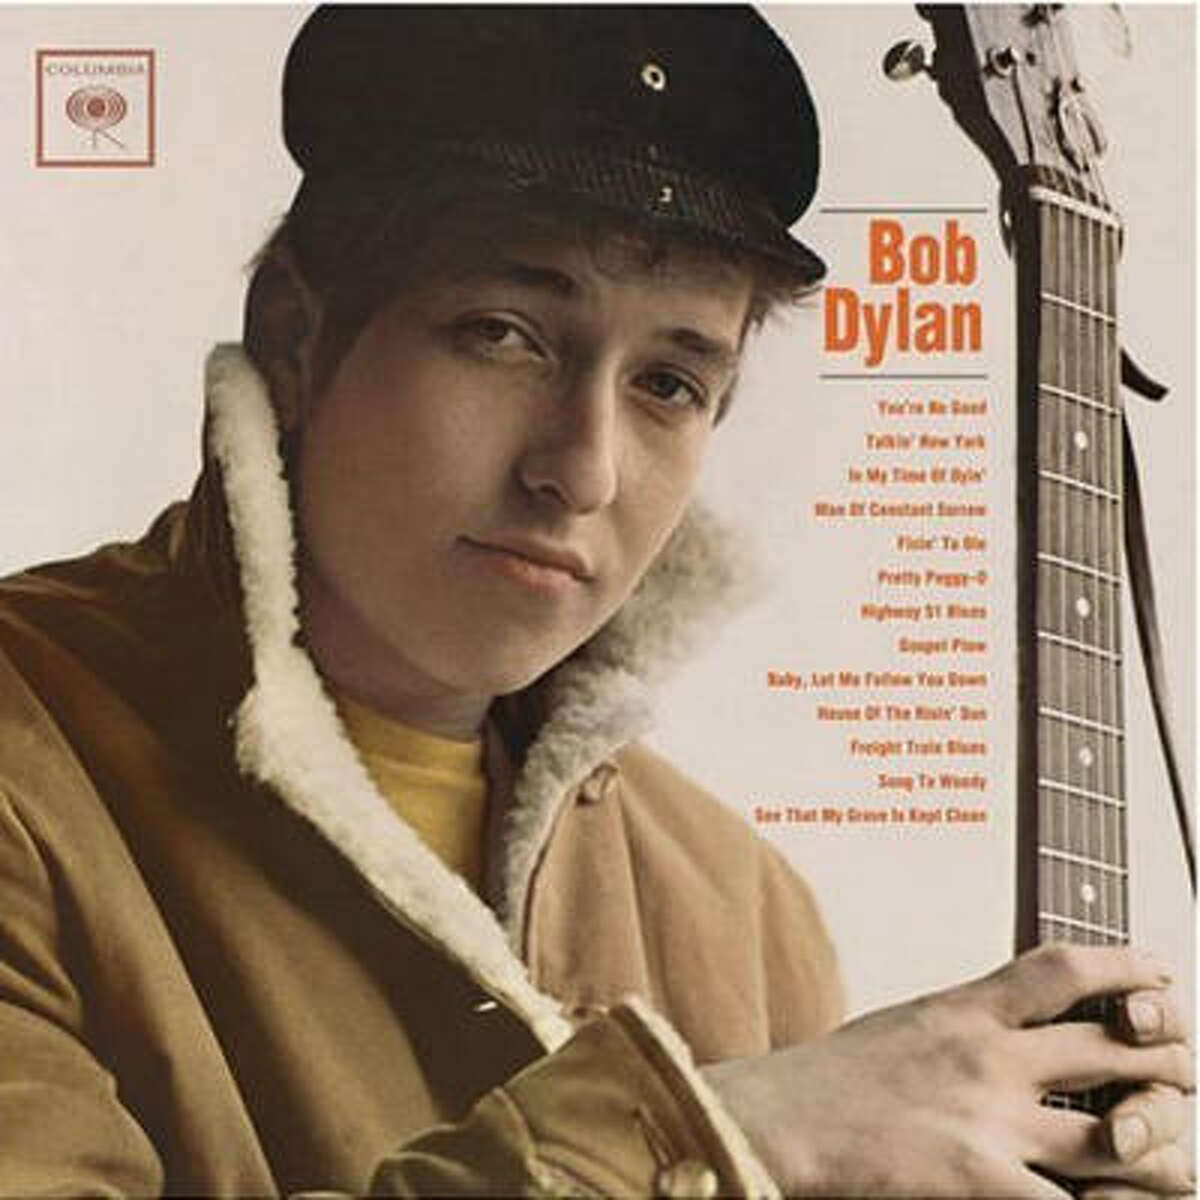 Bob Dylan (1962): He was introduced earnestly, a round-faced folkie with the fisherman's cap and wool-collared winter coat looking straight ahead. He seems bemused by the attention, struggling to stifle a smile.